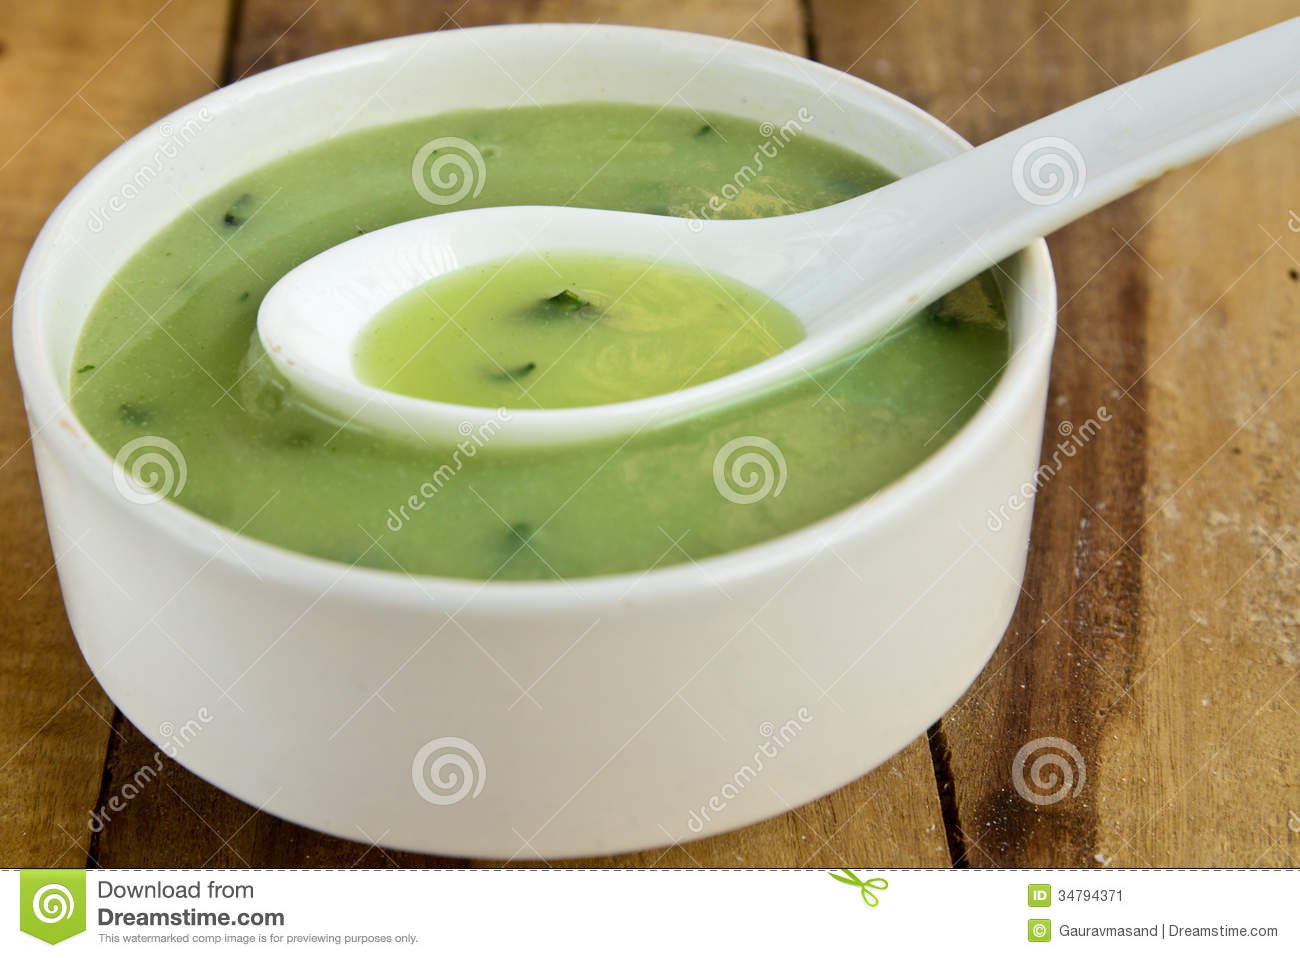 Cream Of Spinach Soup Stock Image - Image: 34794371